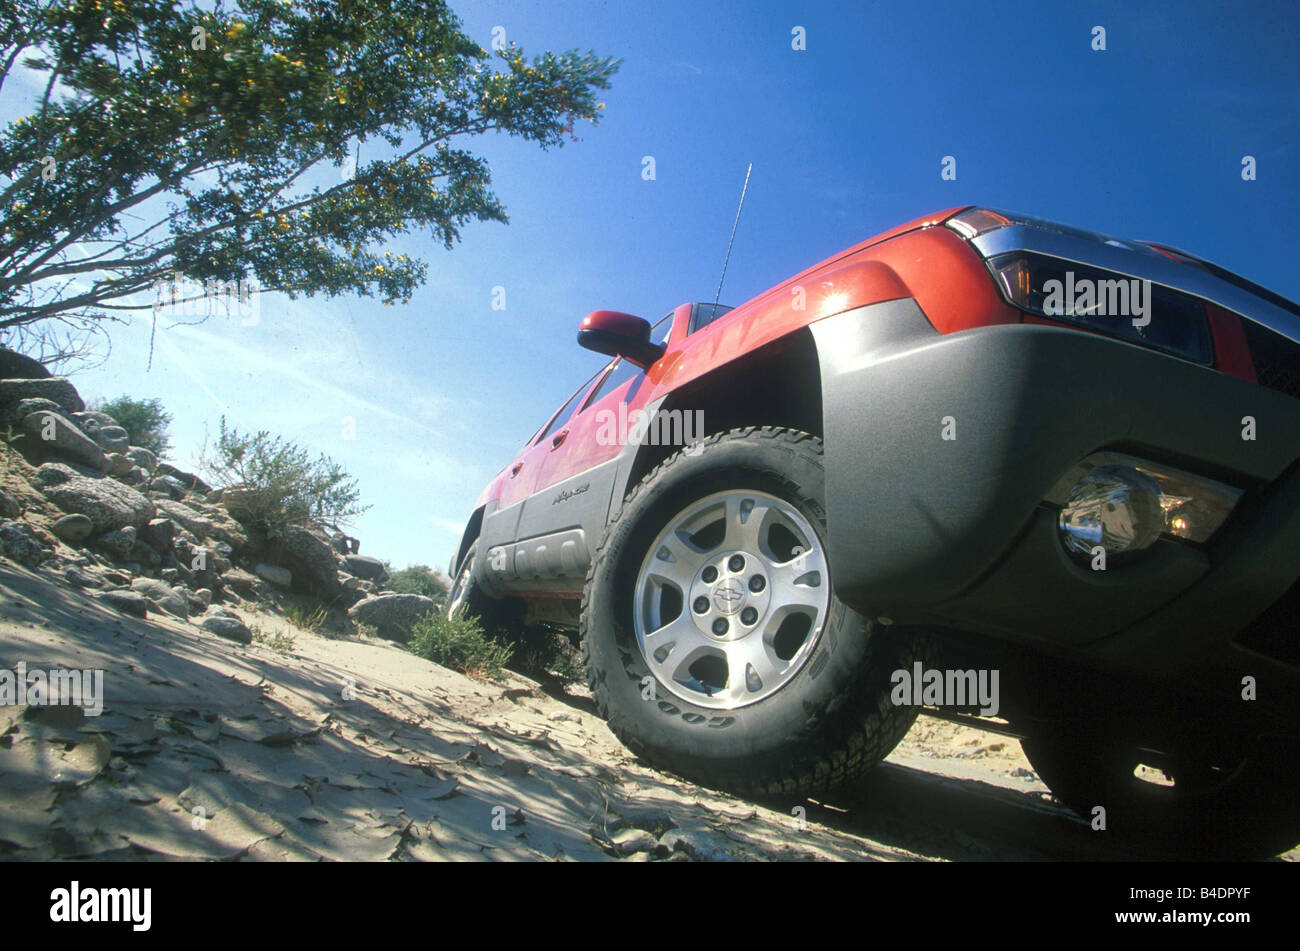 Car, Chevrolet Avalanche 1500 4WD, cross country vehicle, model year 2001-, red, ruby colored, schräg von below/vorne, - Stock Image